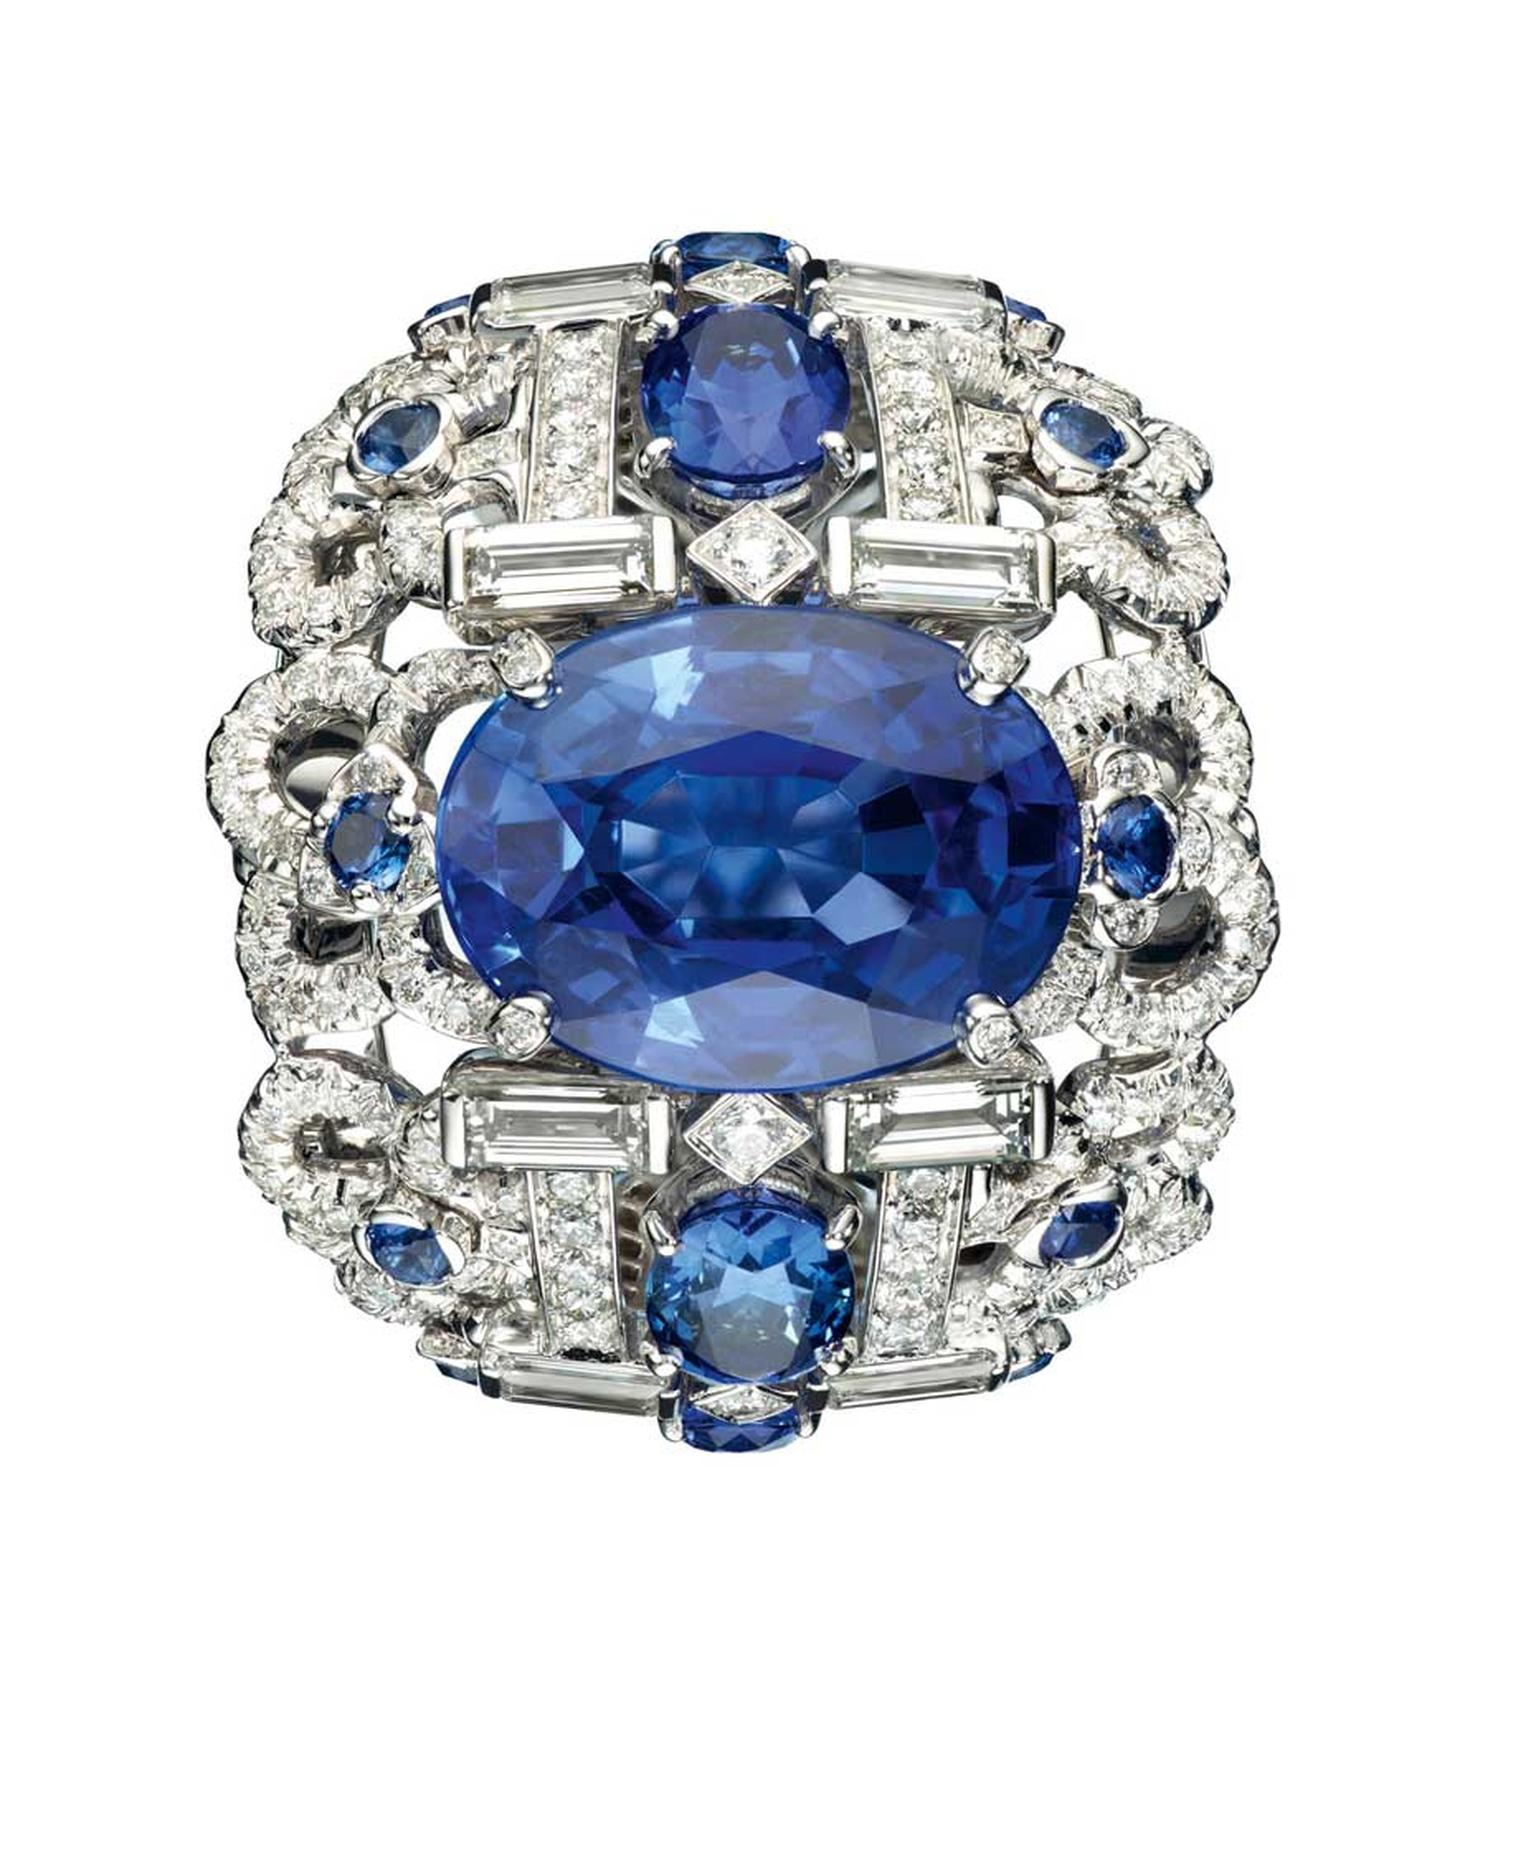 Chaumet white gold Hortensia ring with diamonds, sapphires and set with a centre oval-cut sapphire (9.85ct).